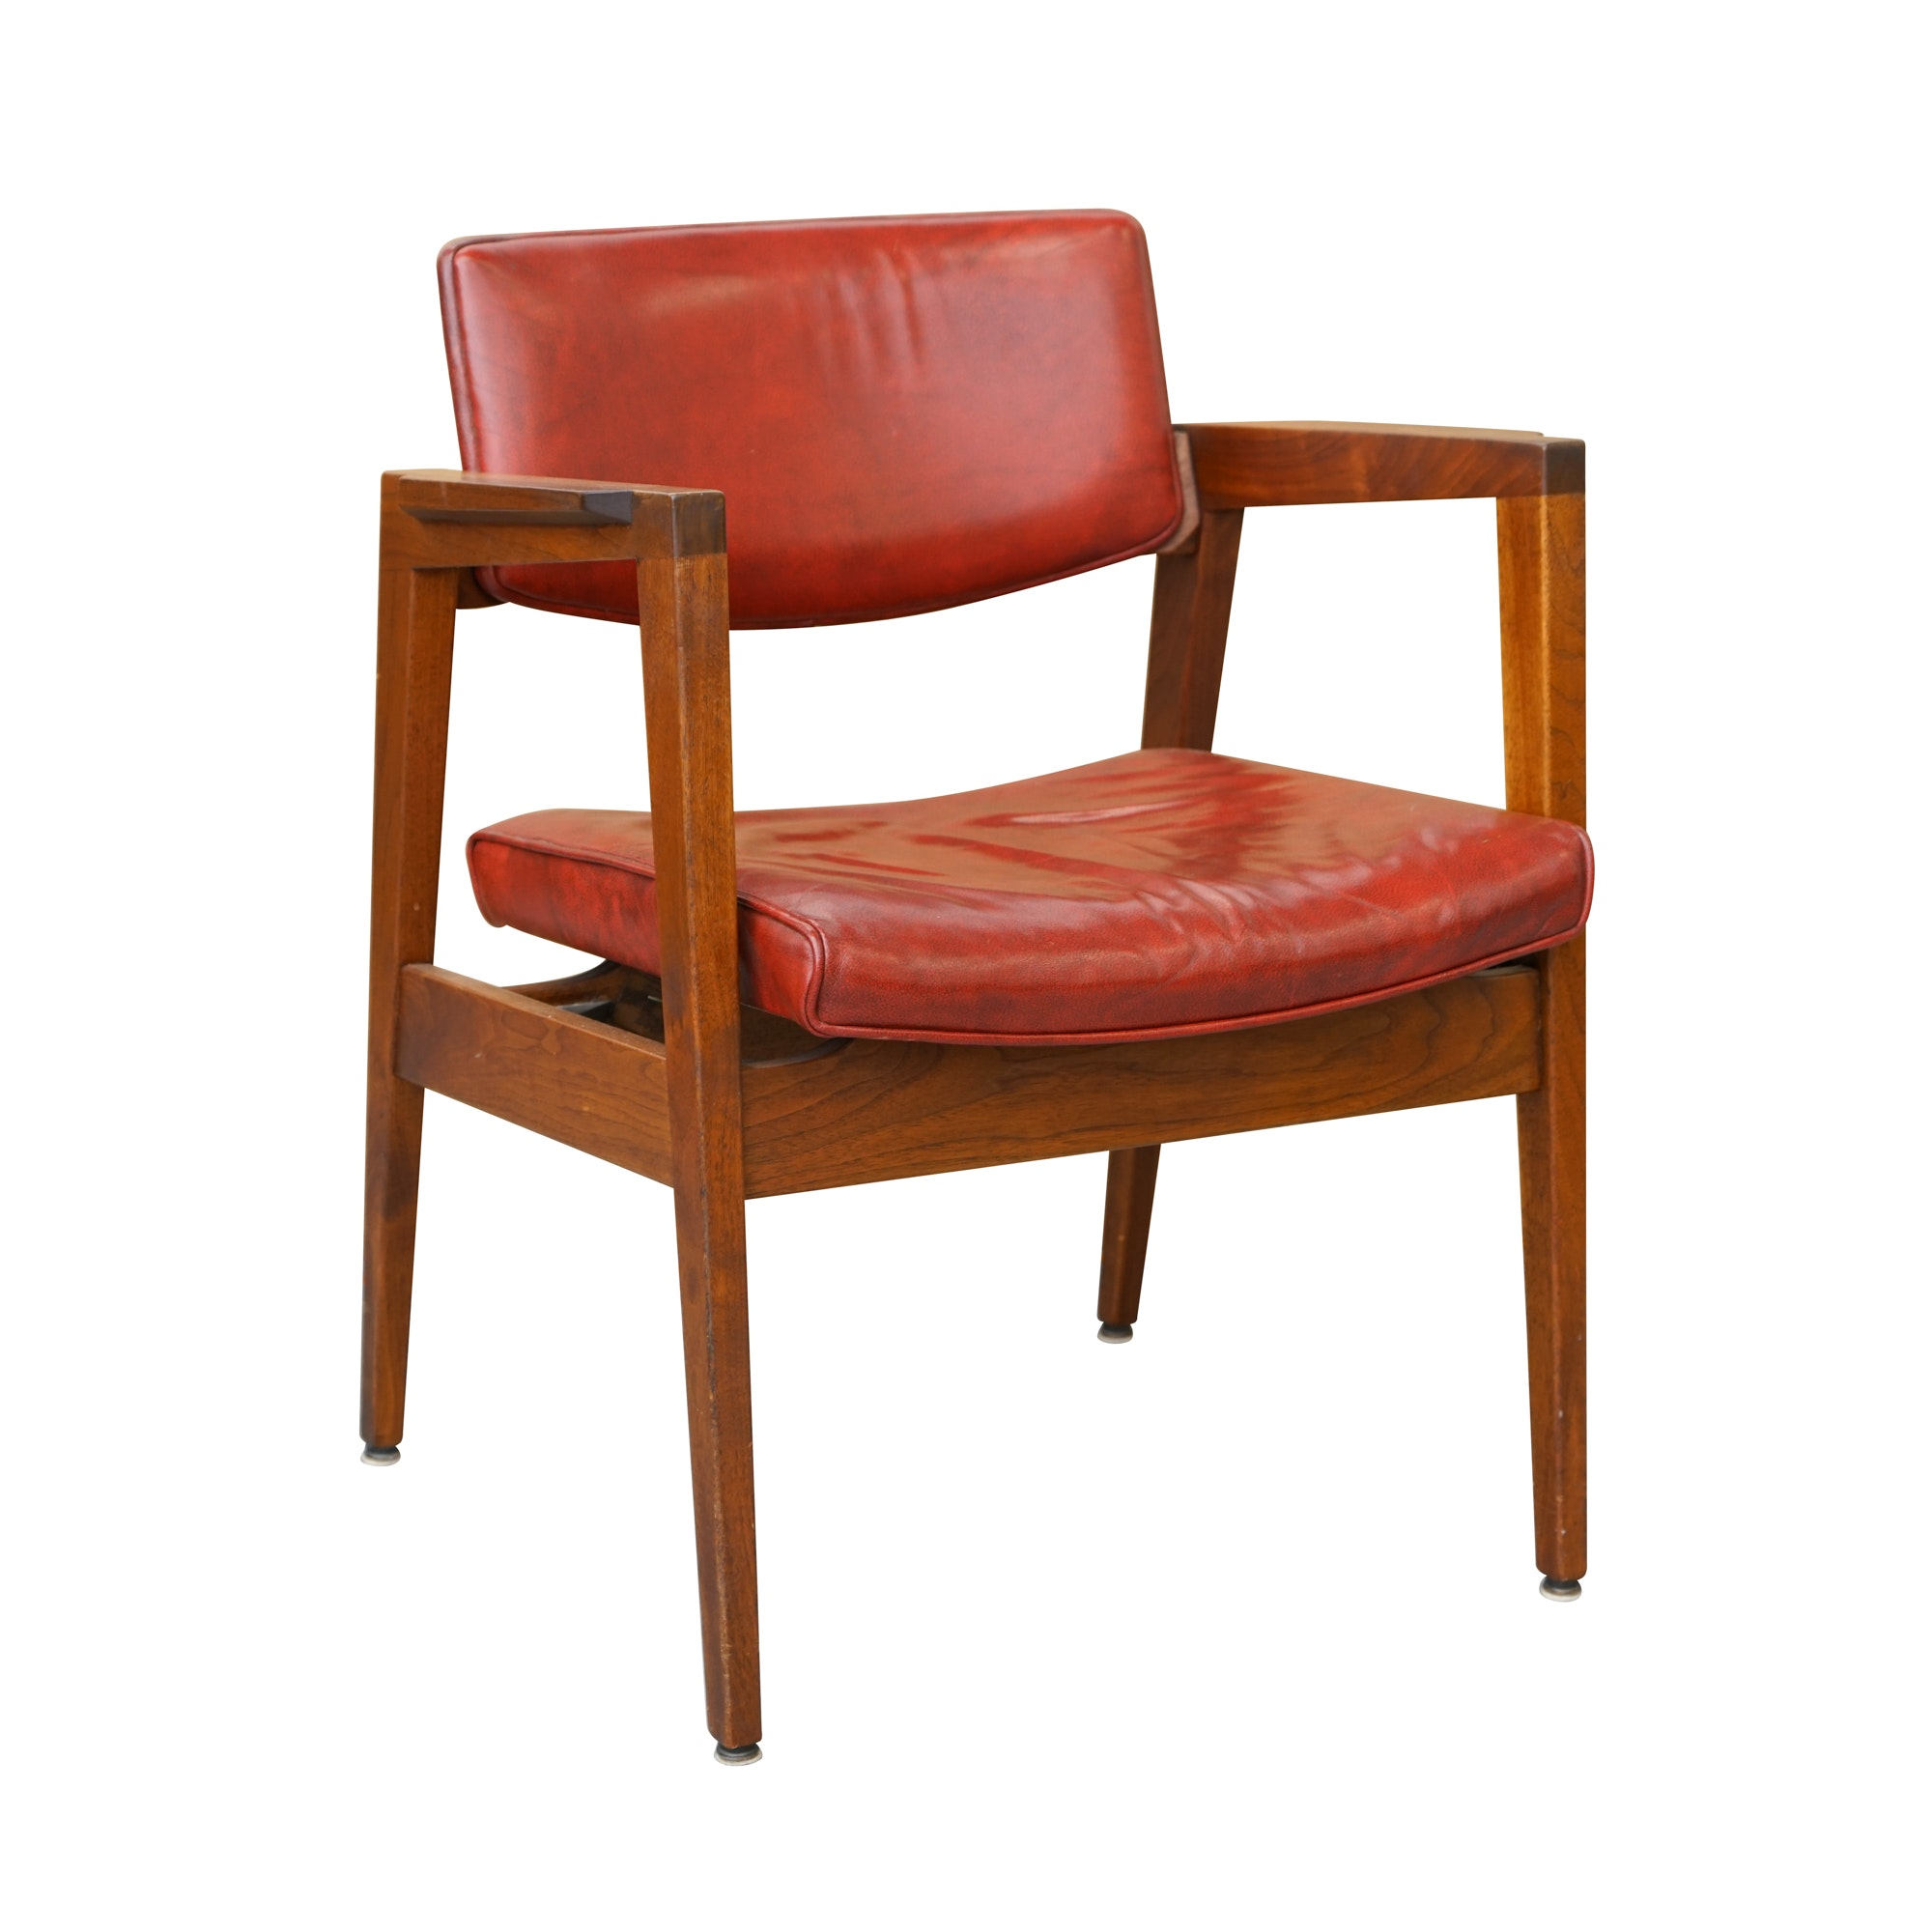 Mid Century Modern Armchair by The Gunlocke Company